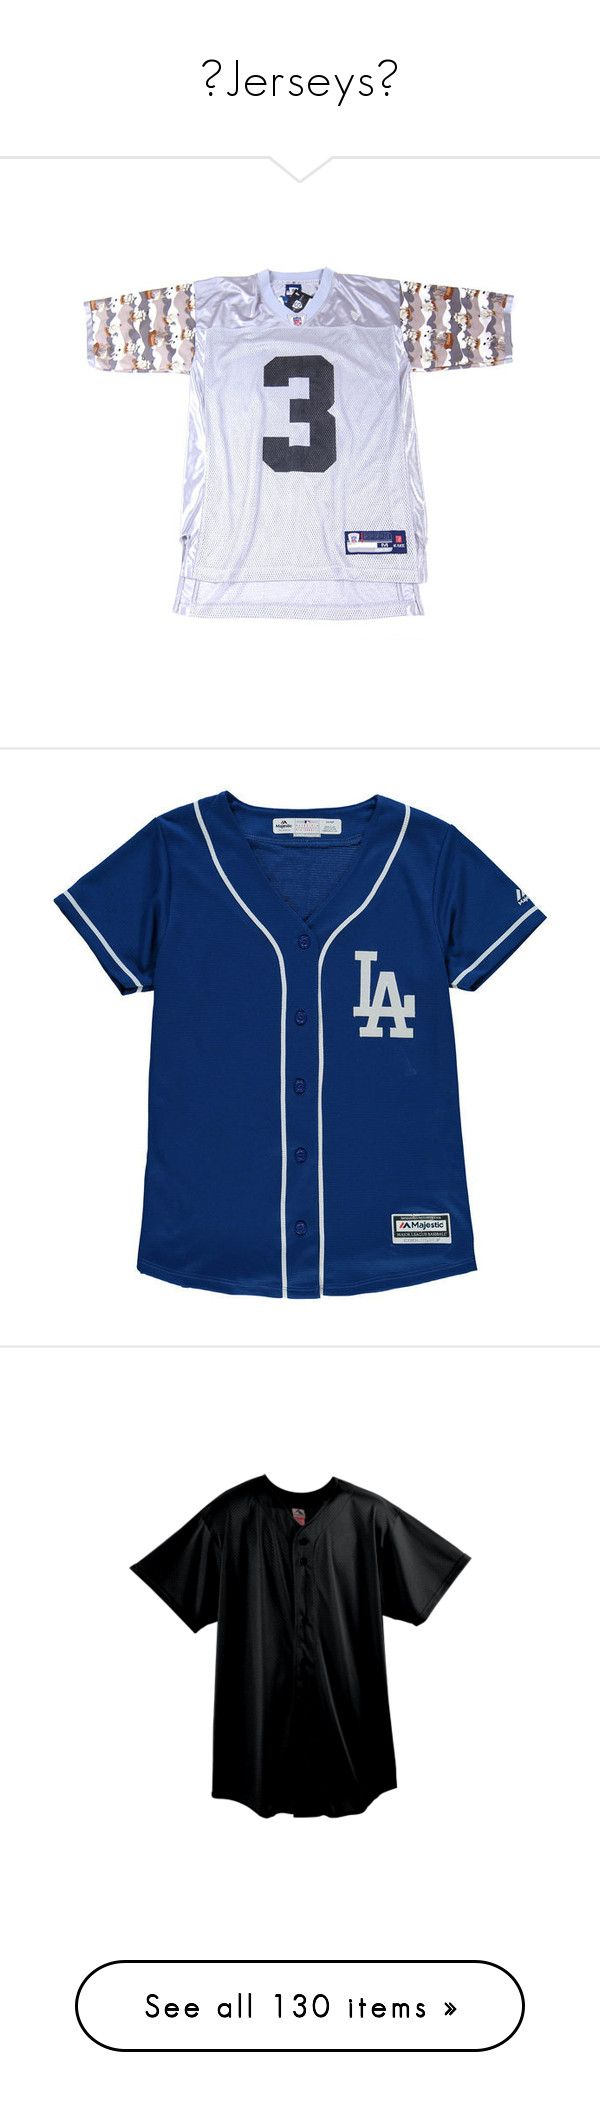 """🔱Jerseys🔱"" by gamergirl247 ❤ liked on Polyvore featuring tops, jersey top, shirts, blue dodgers jersey, los angeles dodgers jersey, blue jersey, blue top, mlb jerseys, men's fashion and men's clothing"